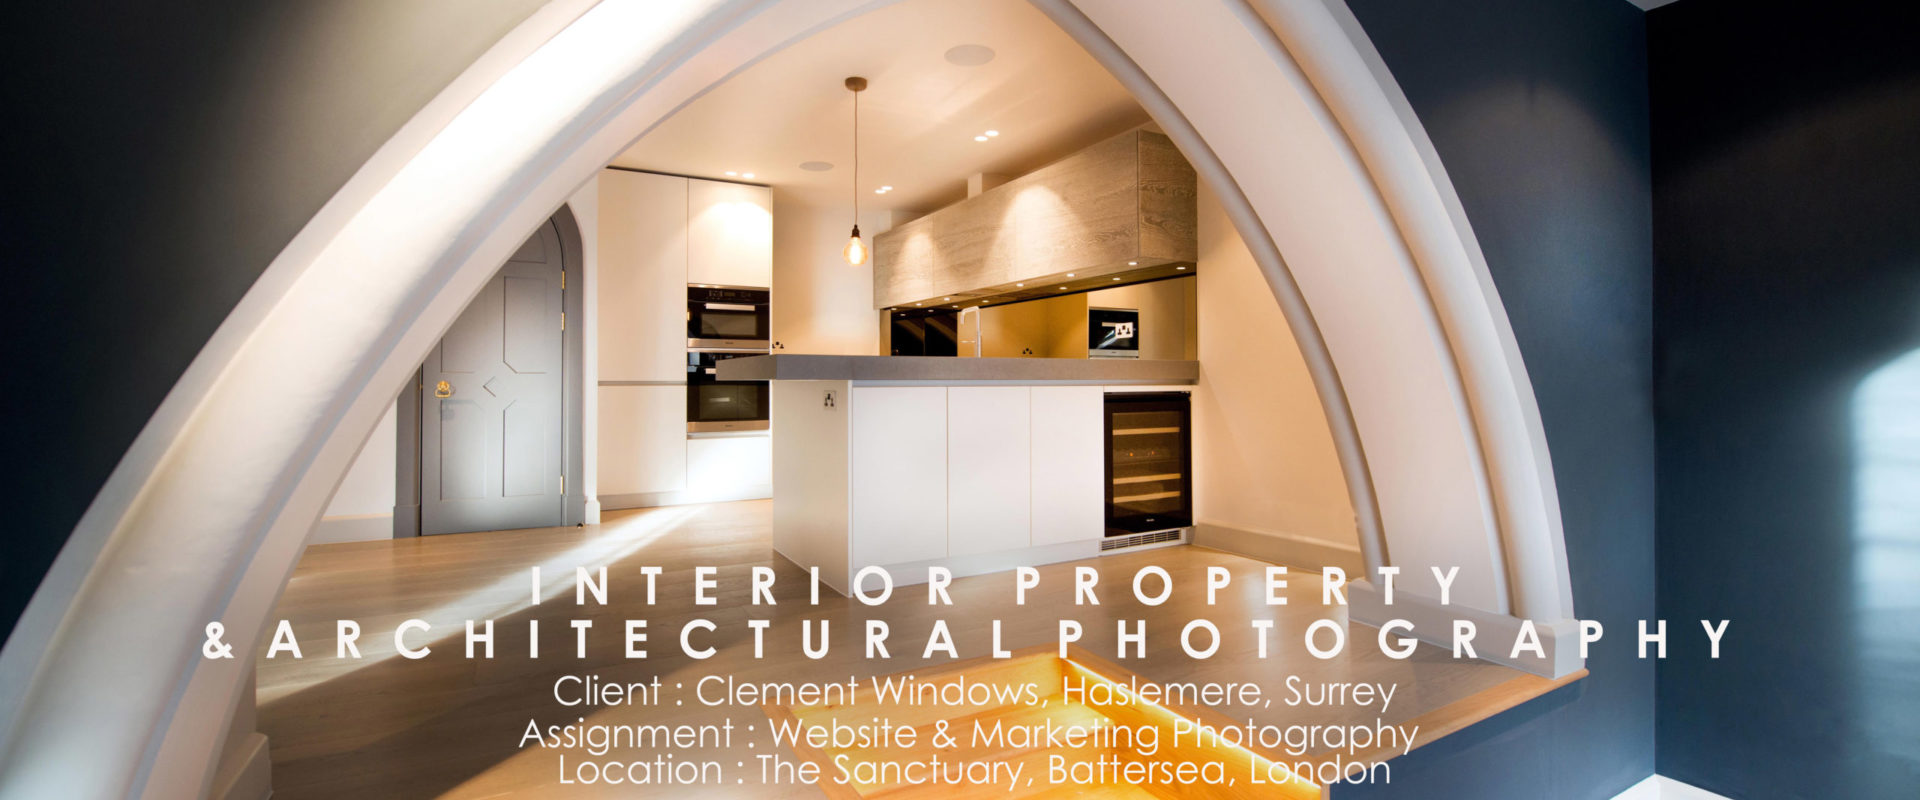 PROPERTY MARKETING PHOTOGRAPH FOR SAVILLS LETTING AGENTS IN LONDON